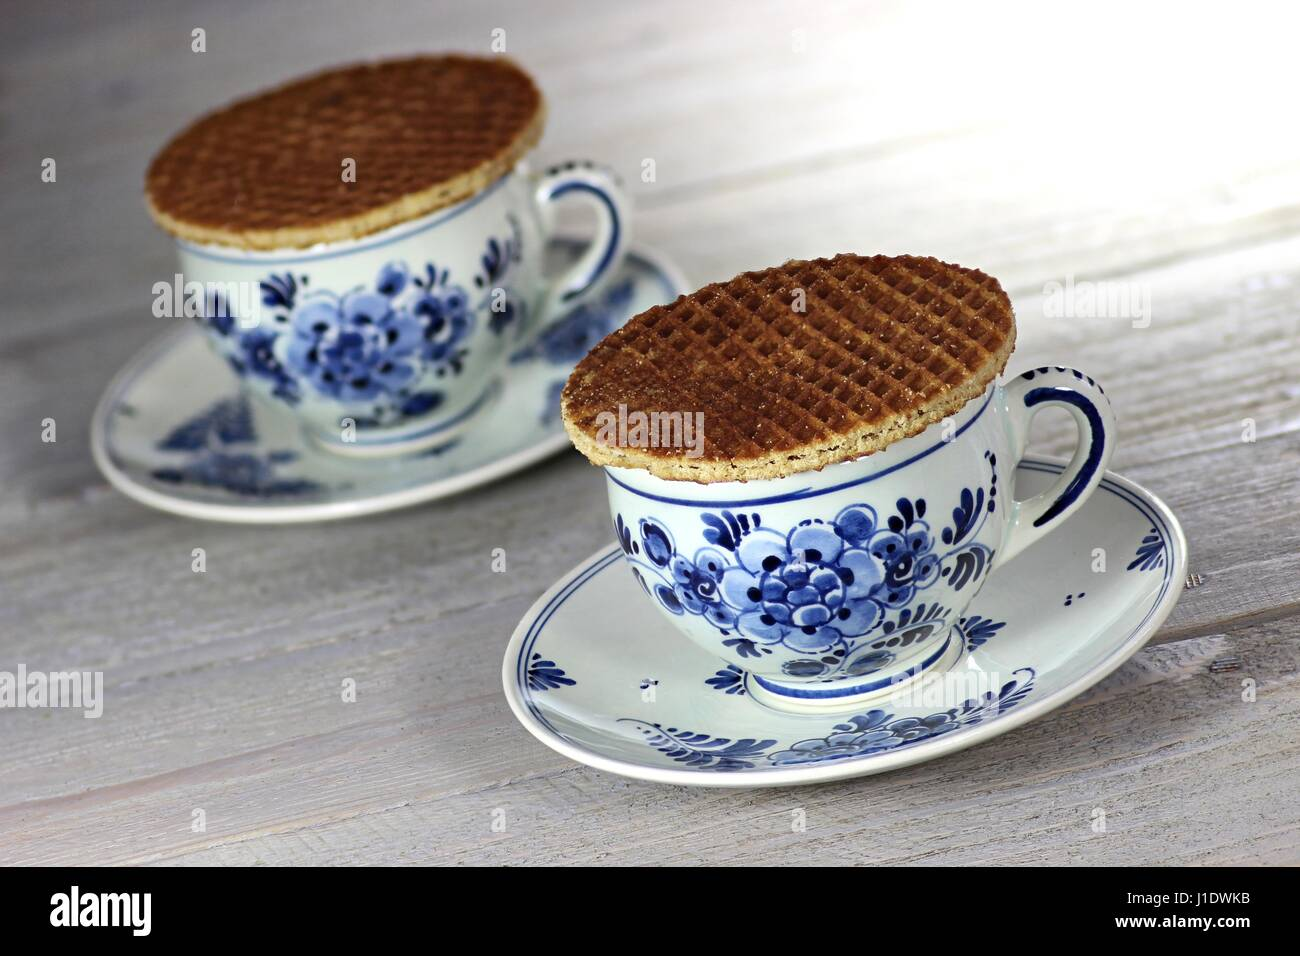 traditional Dutch syrup waffles with Delftware on wooden background - Stock Image